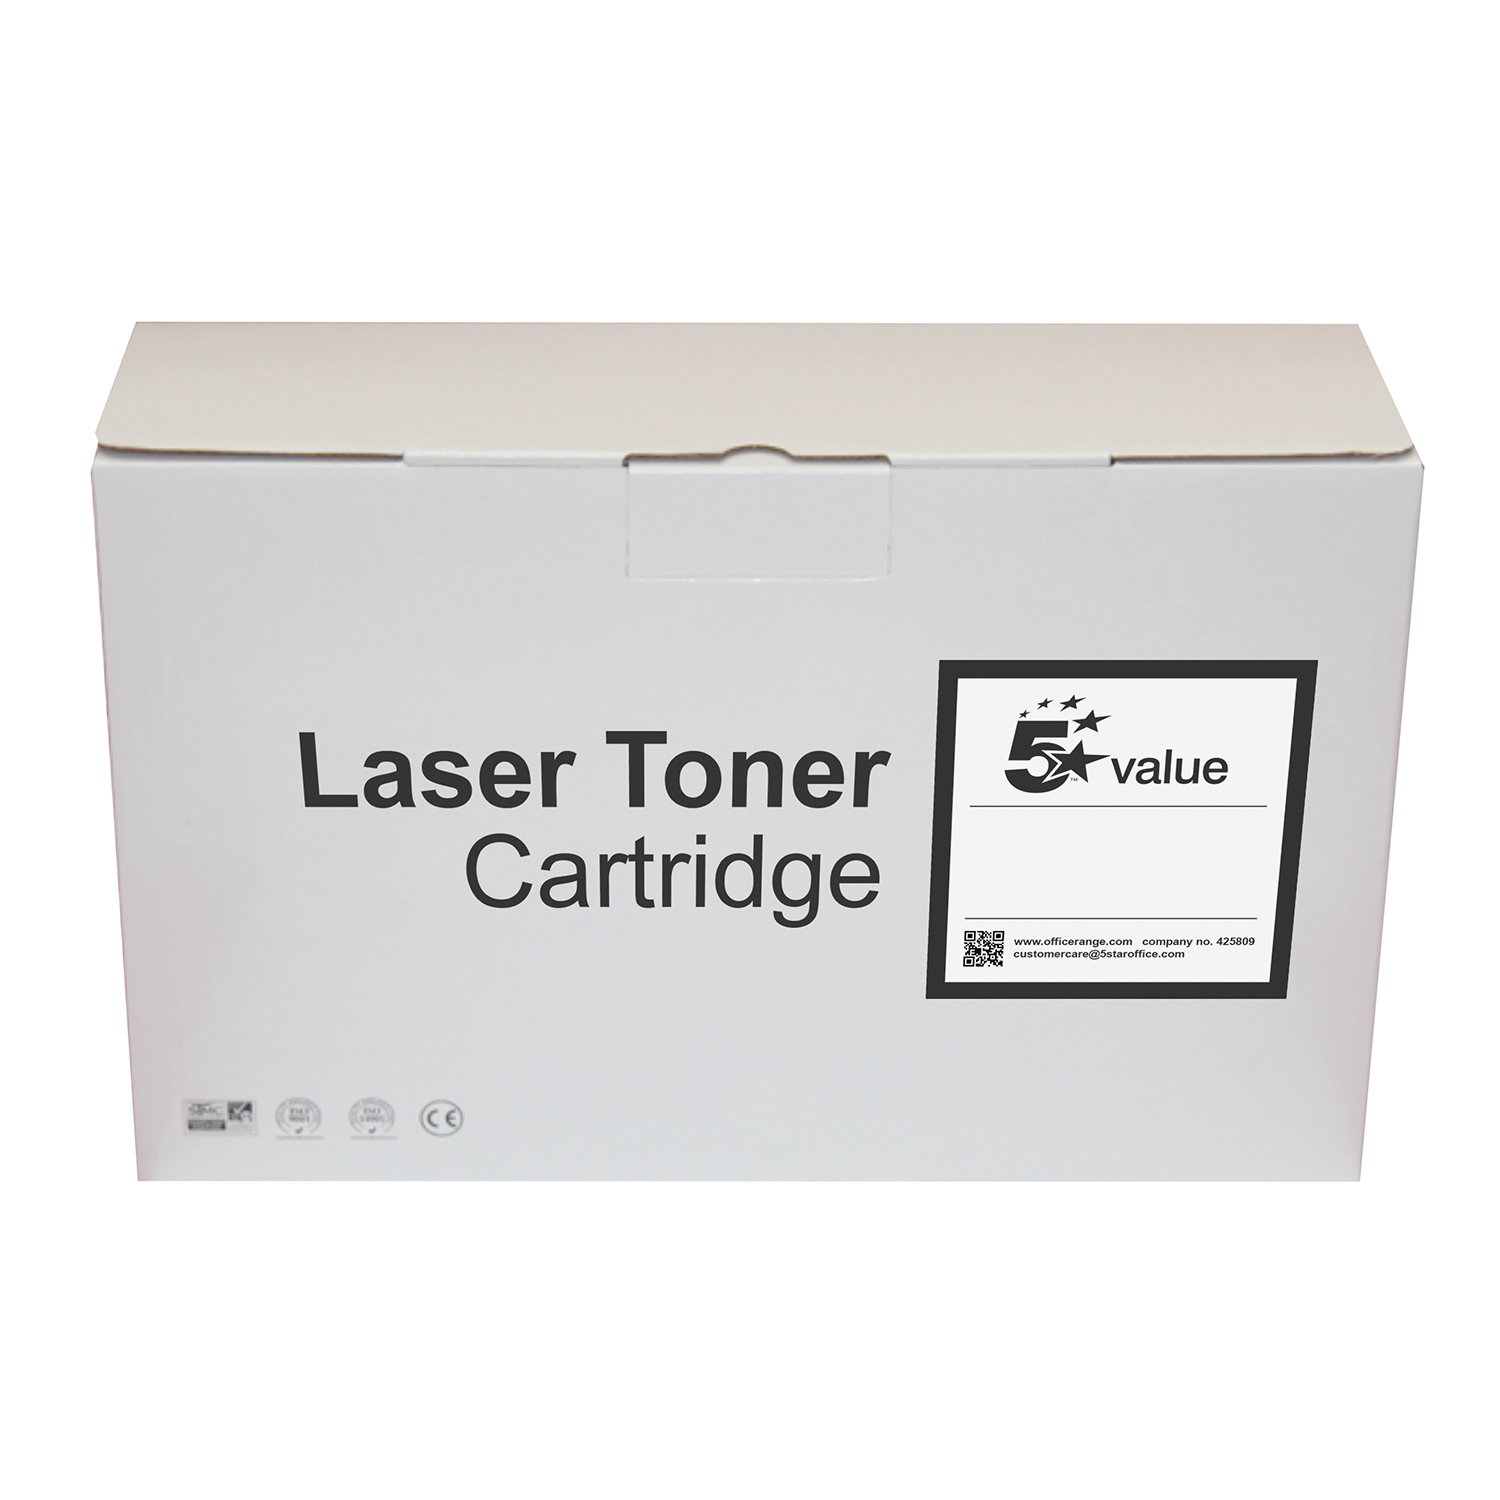 5 Star Value Remanufactured Laser Toner Cartridge 2600pp Yellow HP No. 305A CE412A Alternative